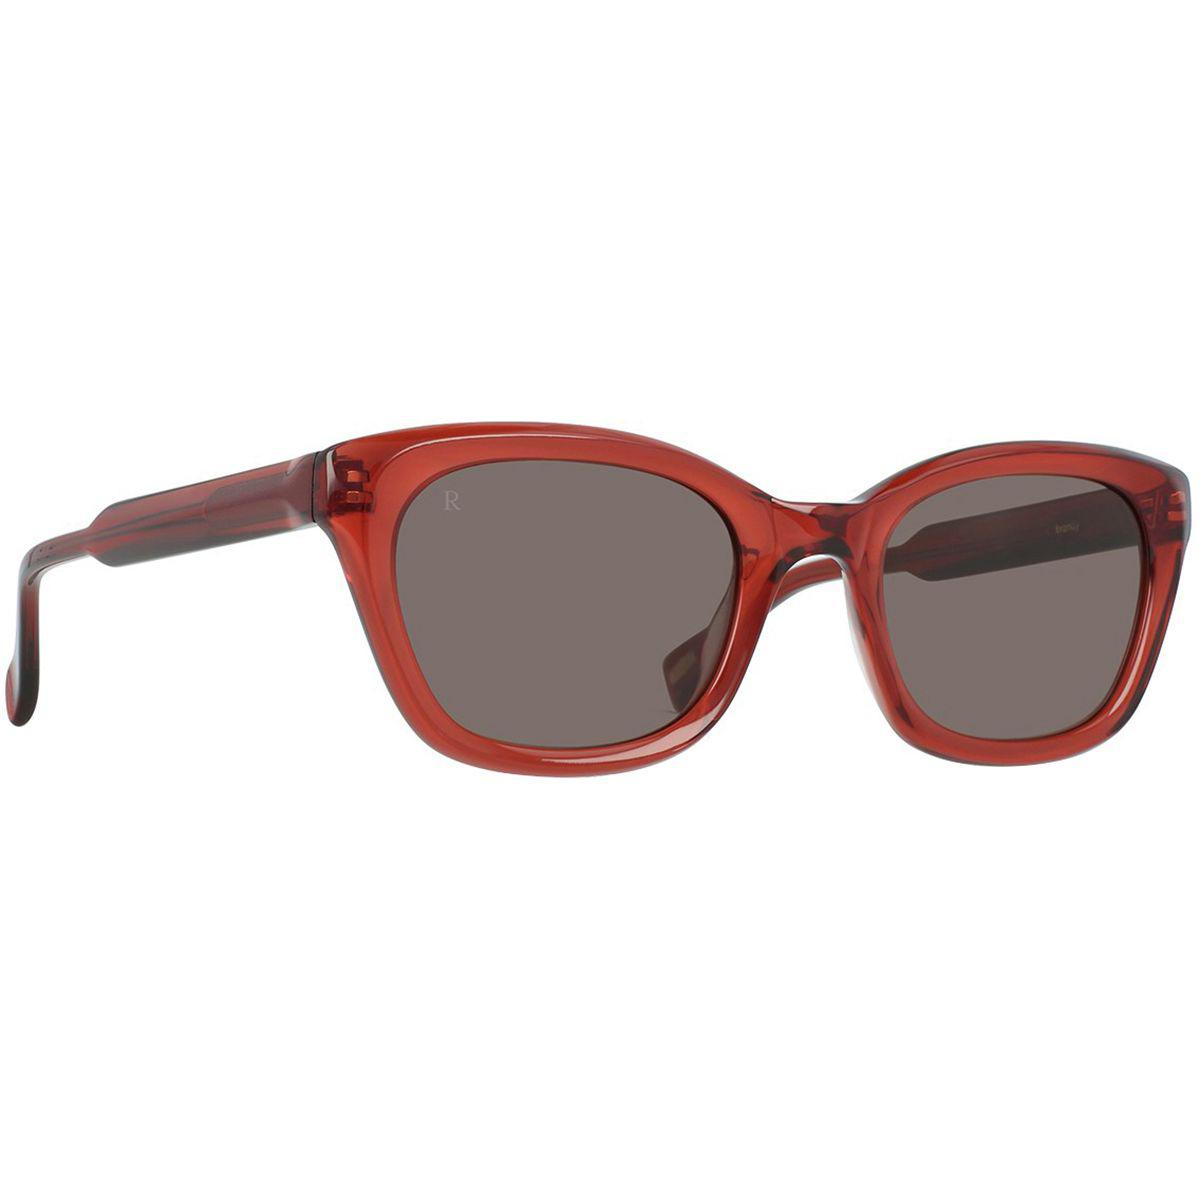 91f2998e3ed Lyst - Raen Clemente Sunglasses in Brown for Men